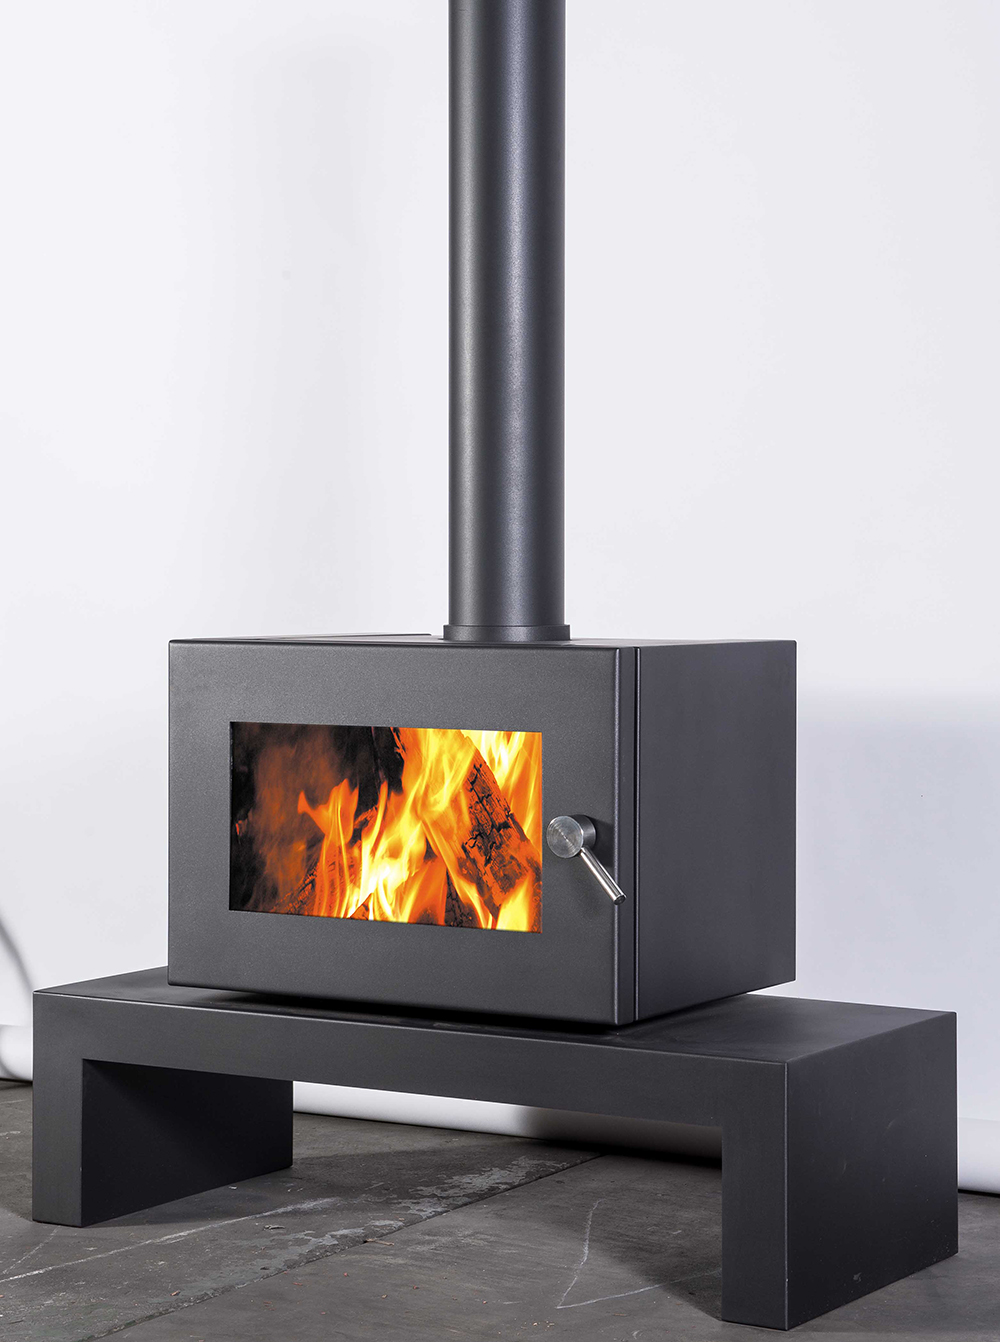 Blaze B605 Freestanding Wood Fireplace Hawkesbury Heating